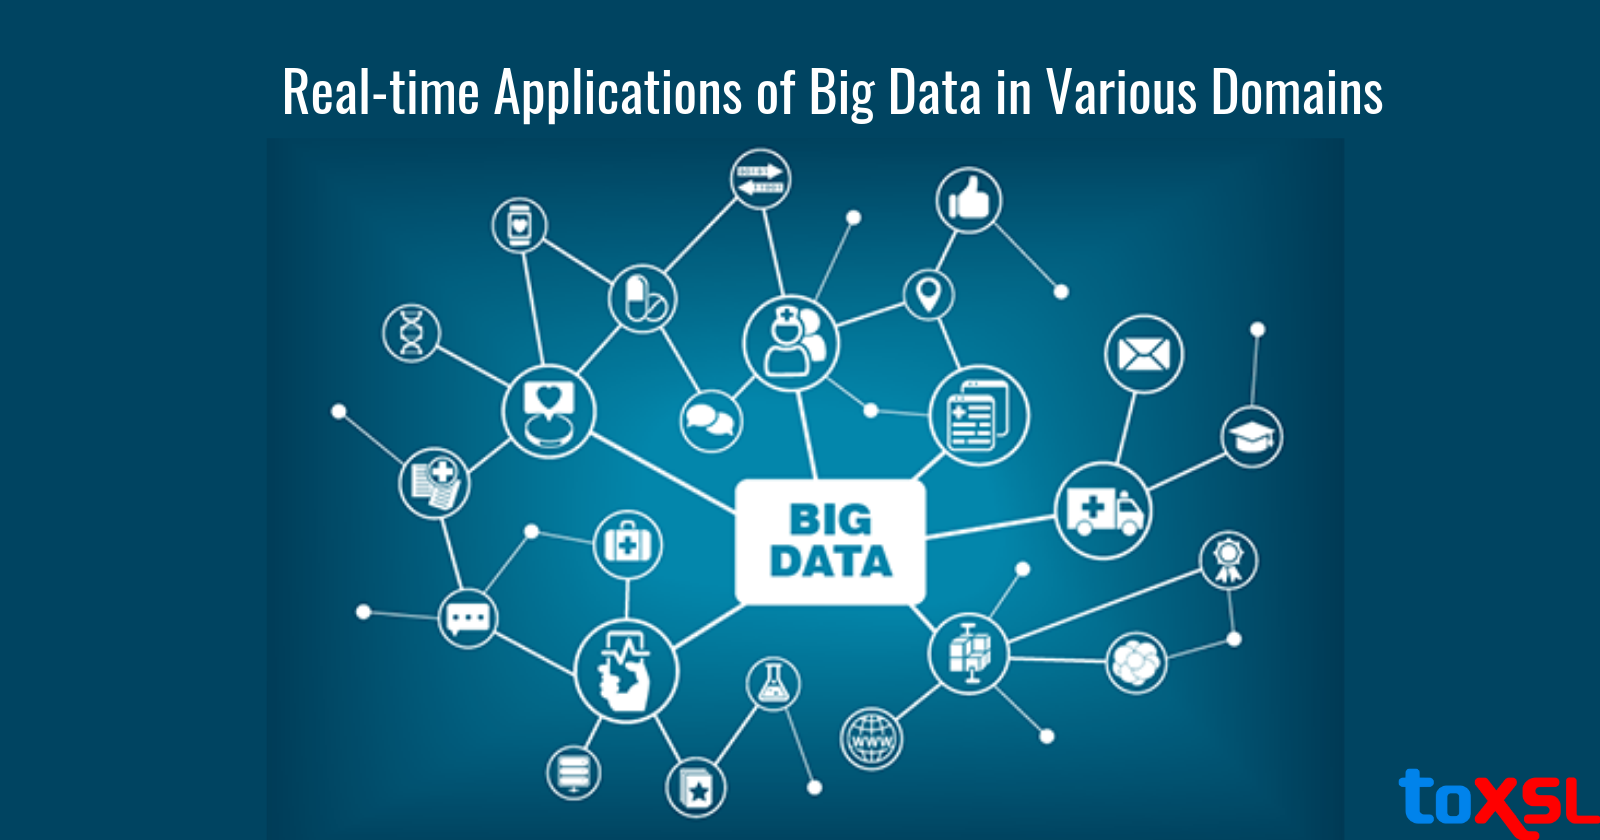 How Big Data Will Influence Various Domains in the Coming Future